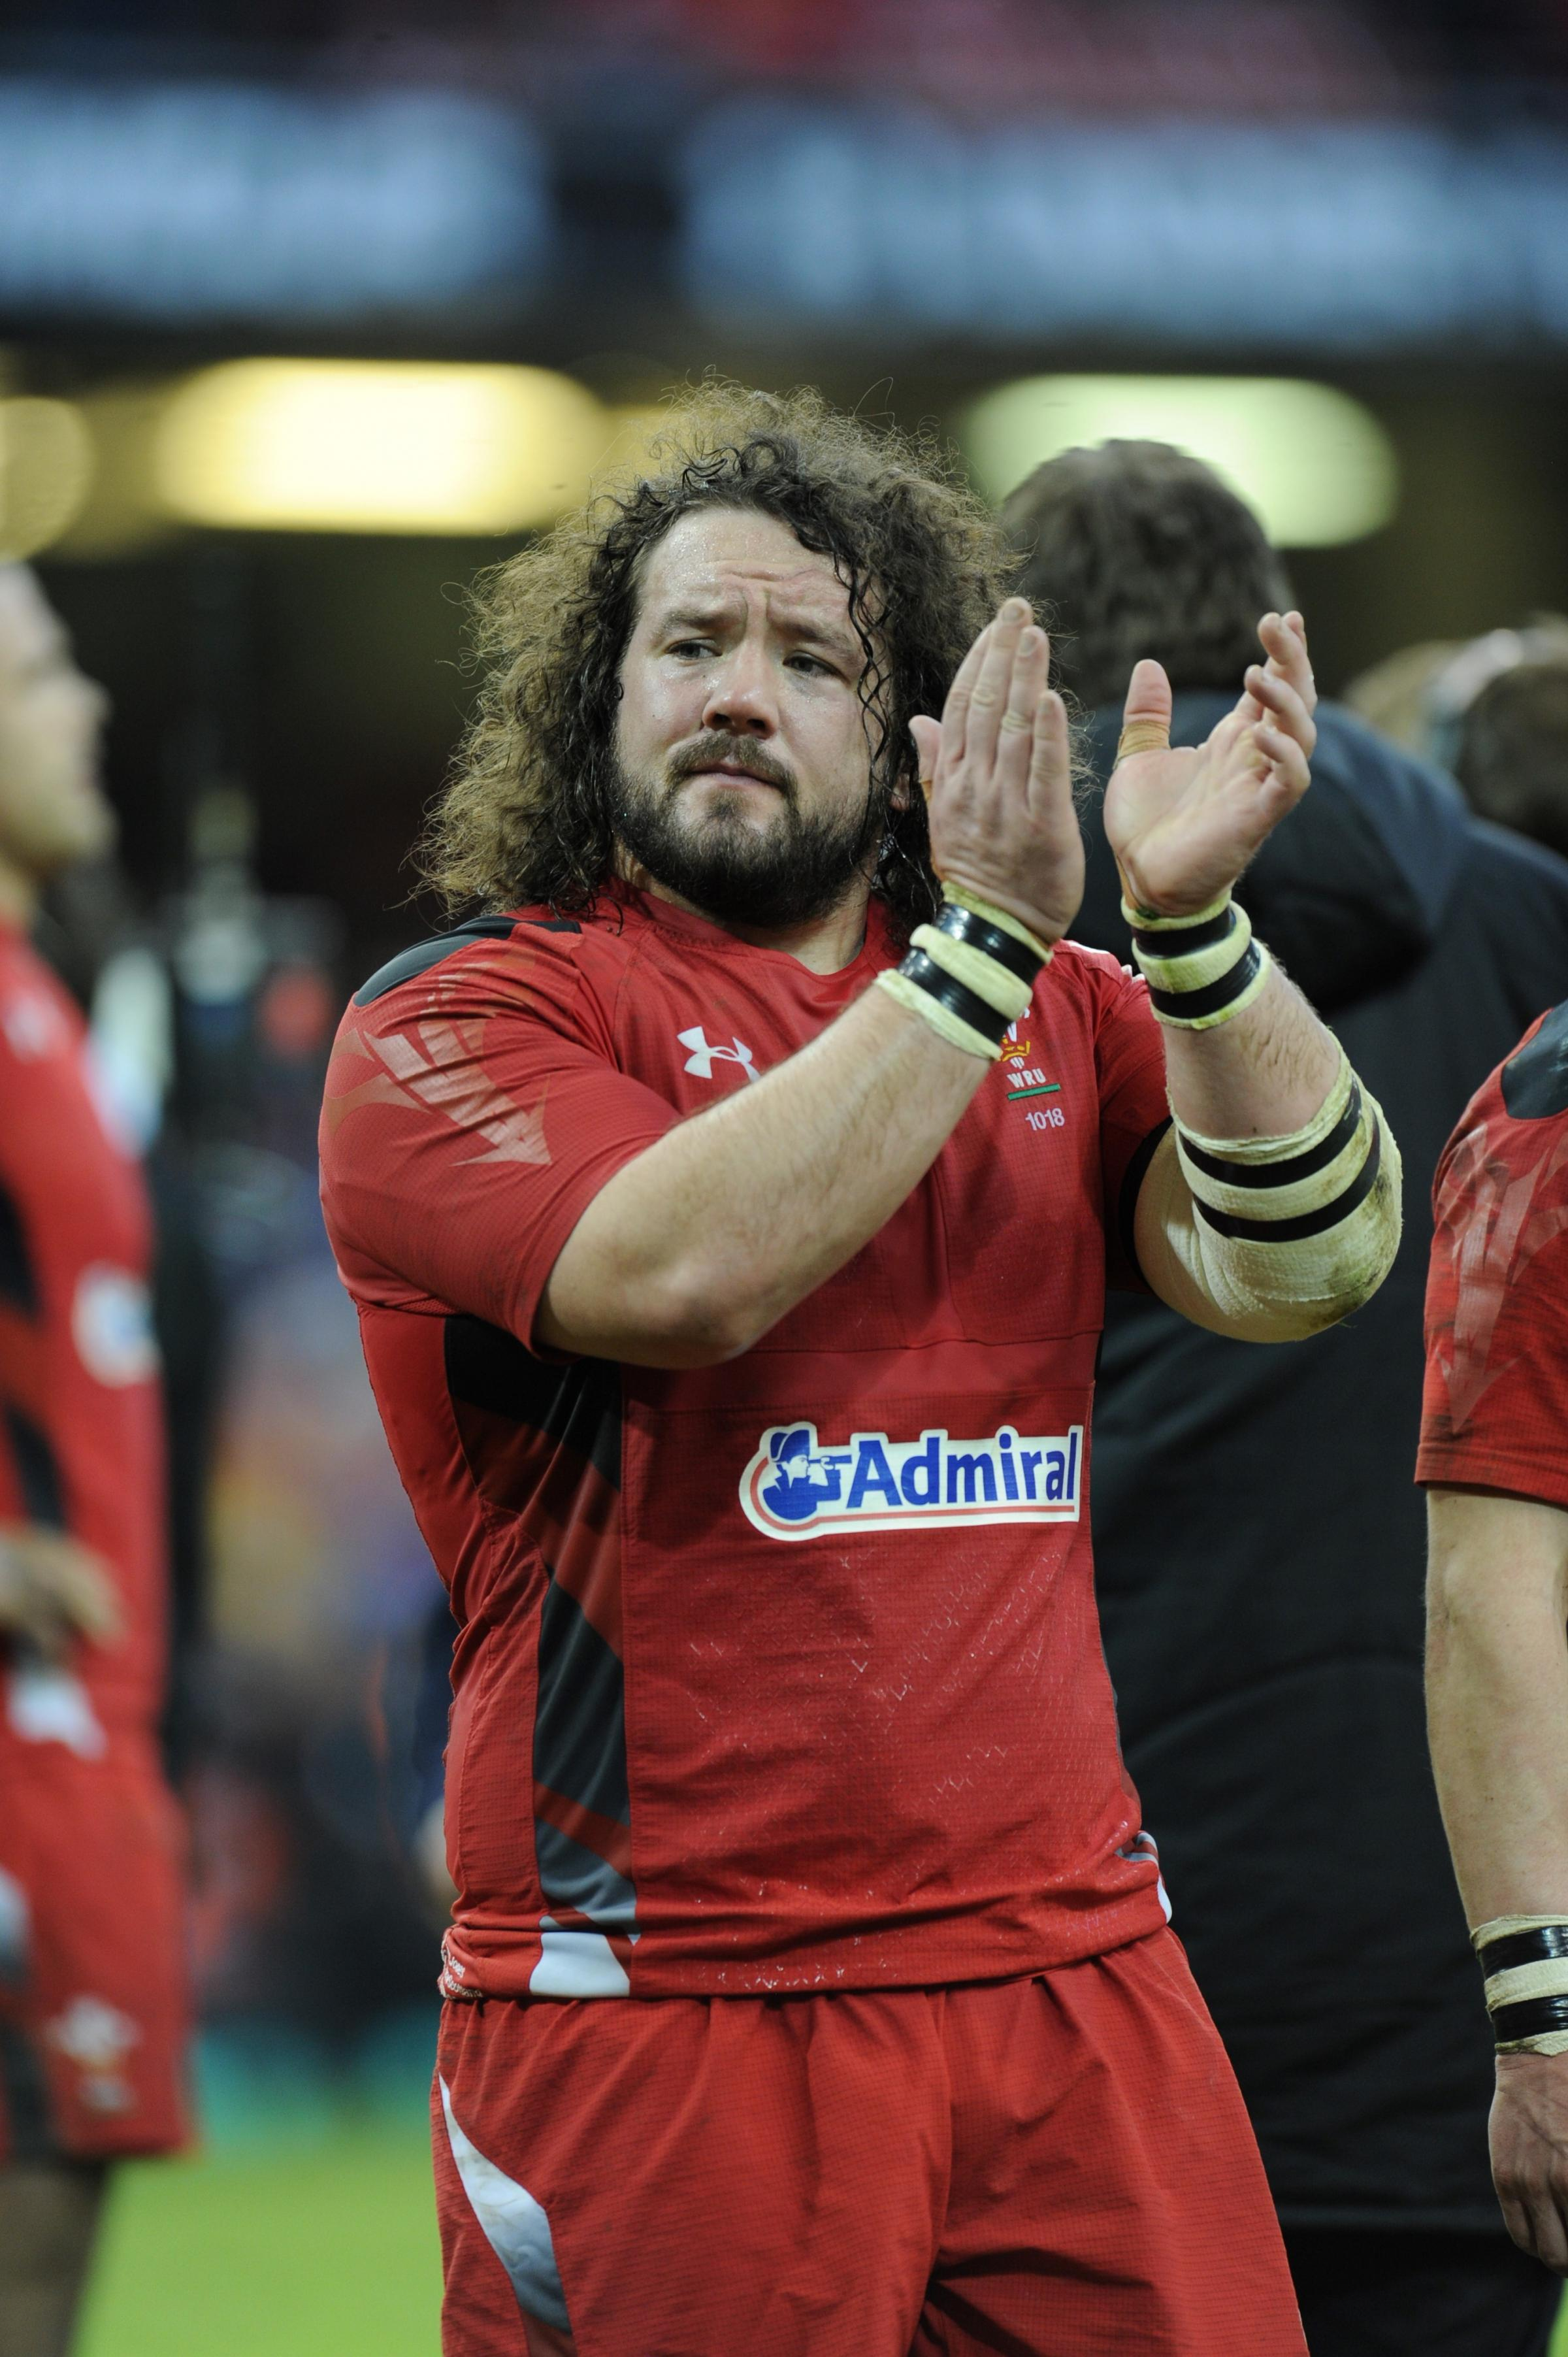 SURPRISE: Adam Jones' move to Cardiff has given Robin McBryde the Blues